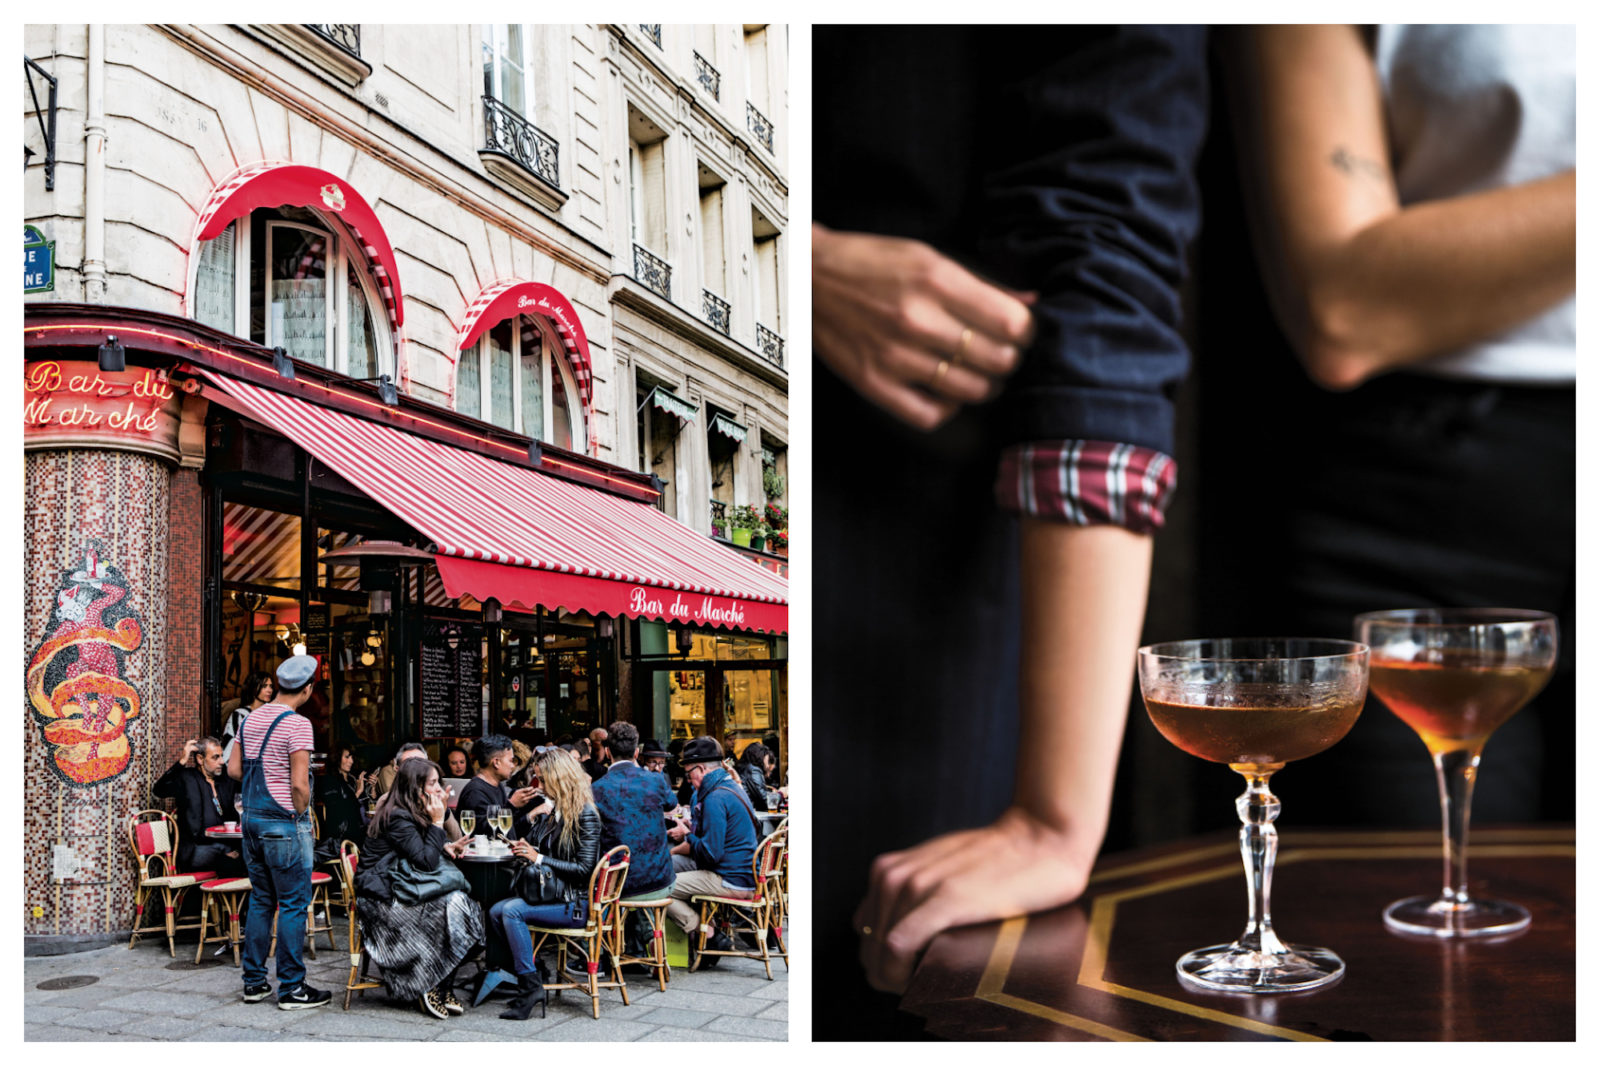 A favorite Parisian bistro with an outdoor terrace is the perfect spot for drinks (left). French Suze cocktails from Rebekah Peppler's French 'Aperitif' book (right).